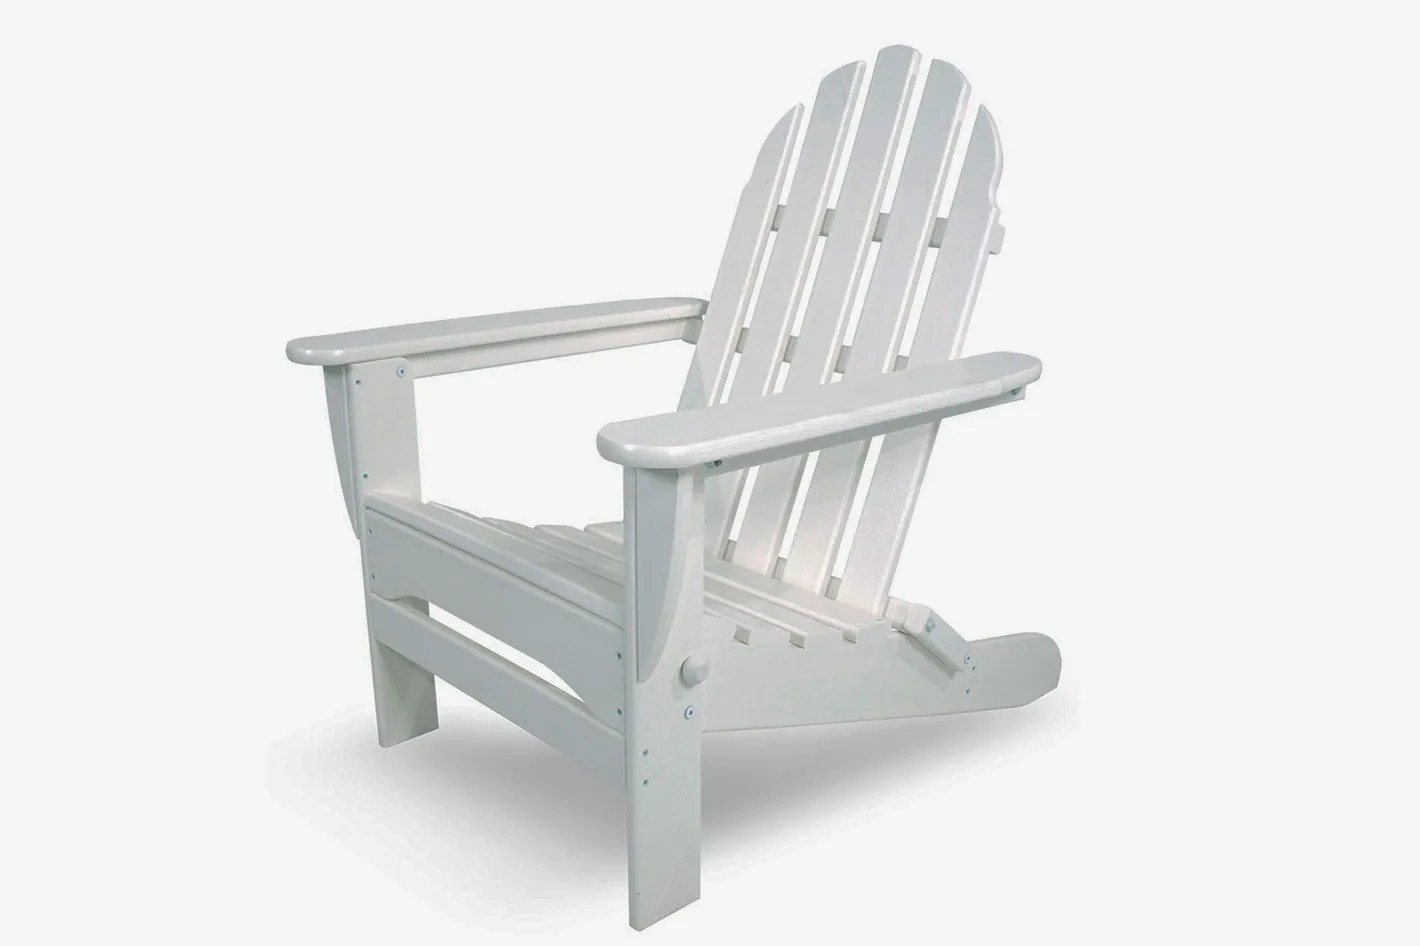 portable lawn chairs office under 100 11 best lawnchairs and camping 2018 polywood ad5030wh classic folding adirondack